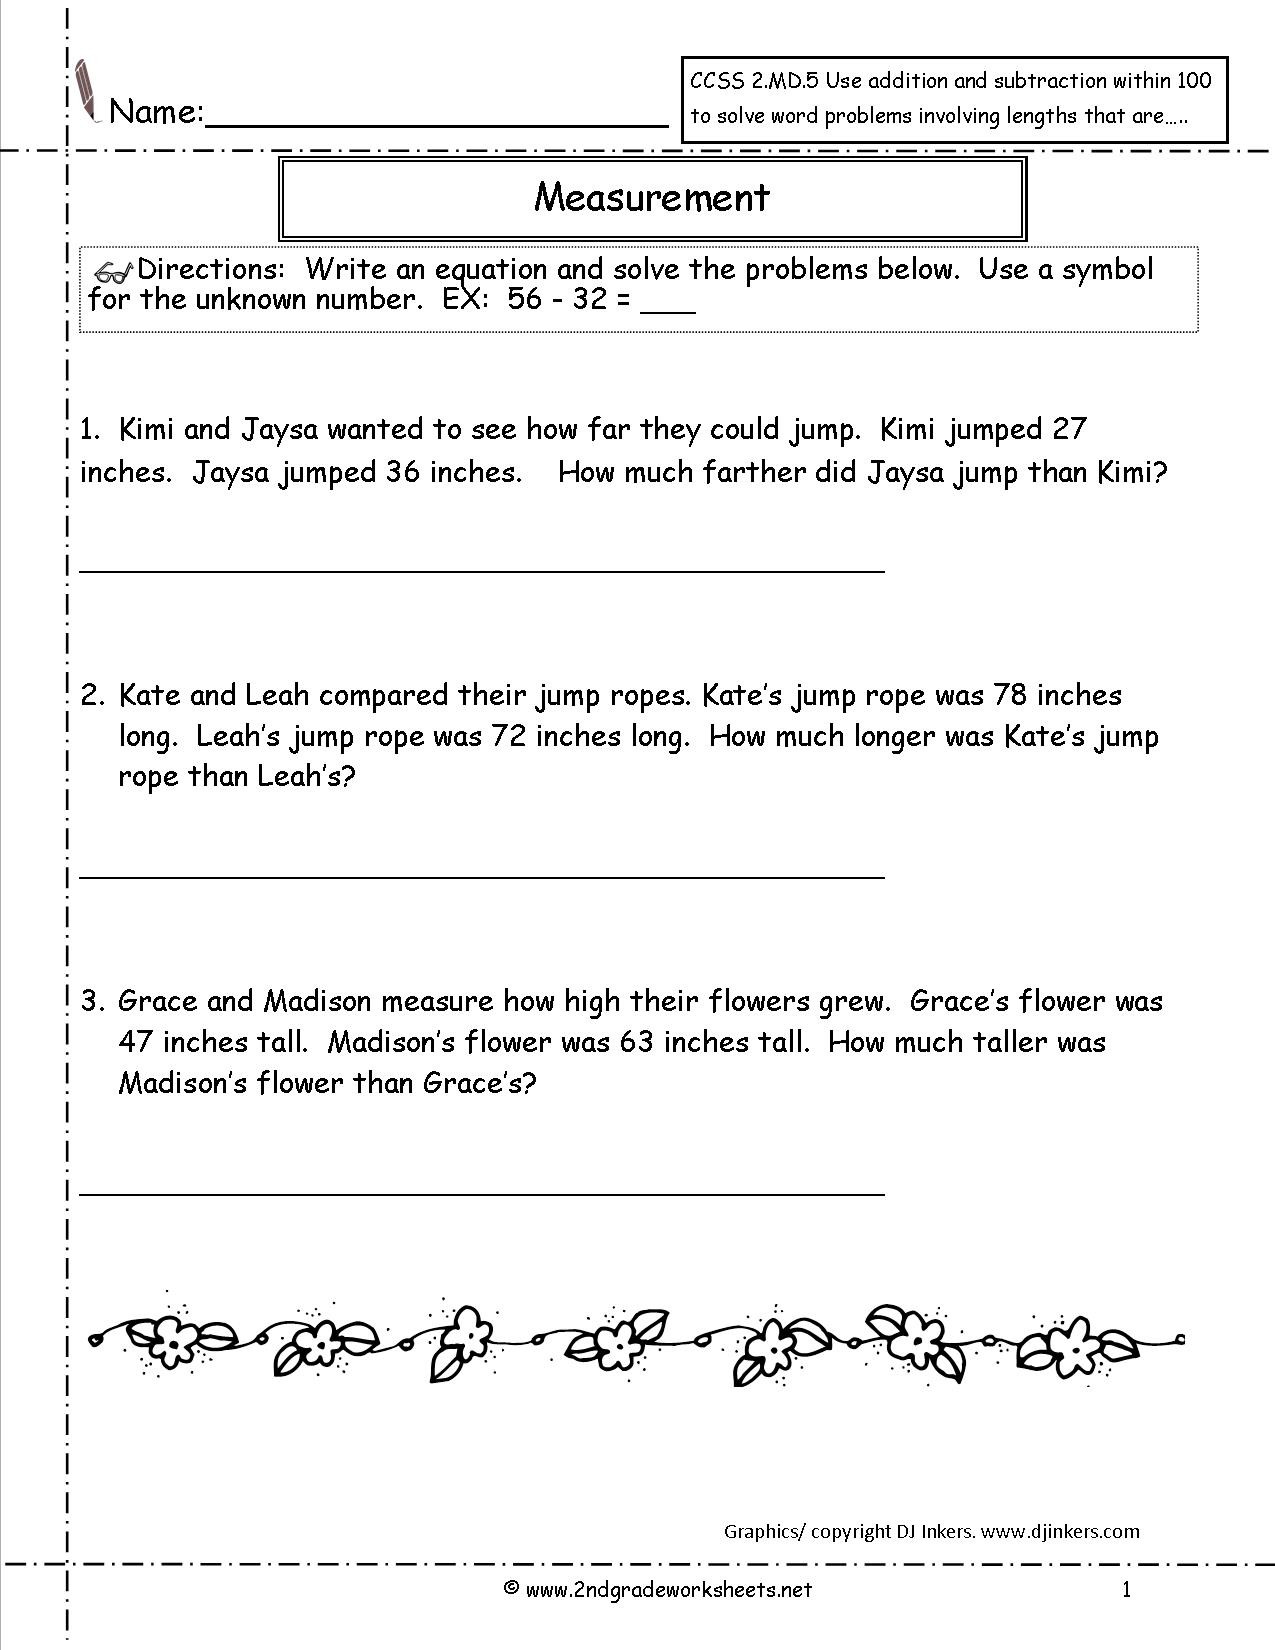 ccss md worksheets paring measurements ccss2md51a second grade measurement 2nd lesson plans activities word